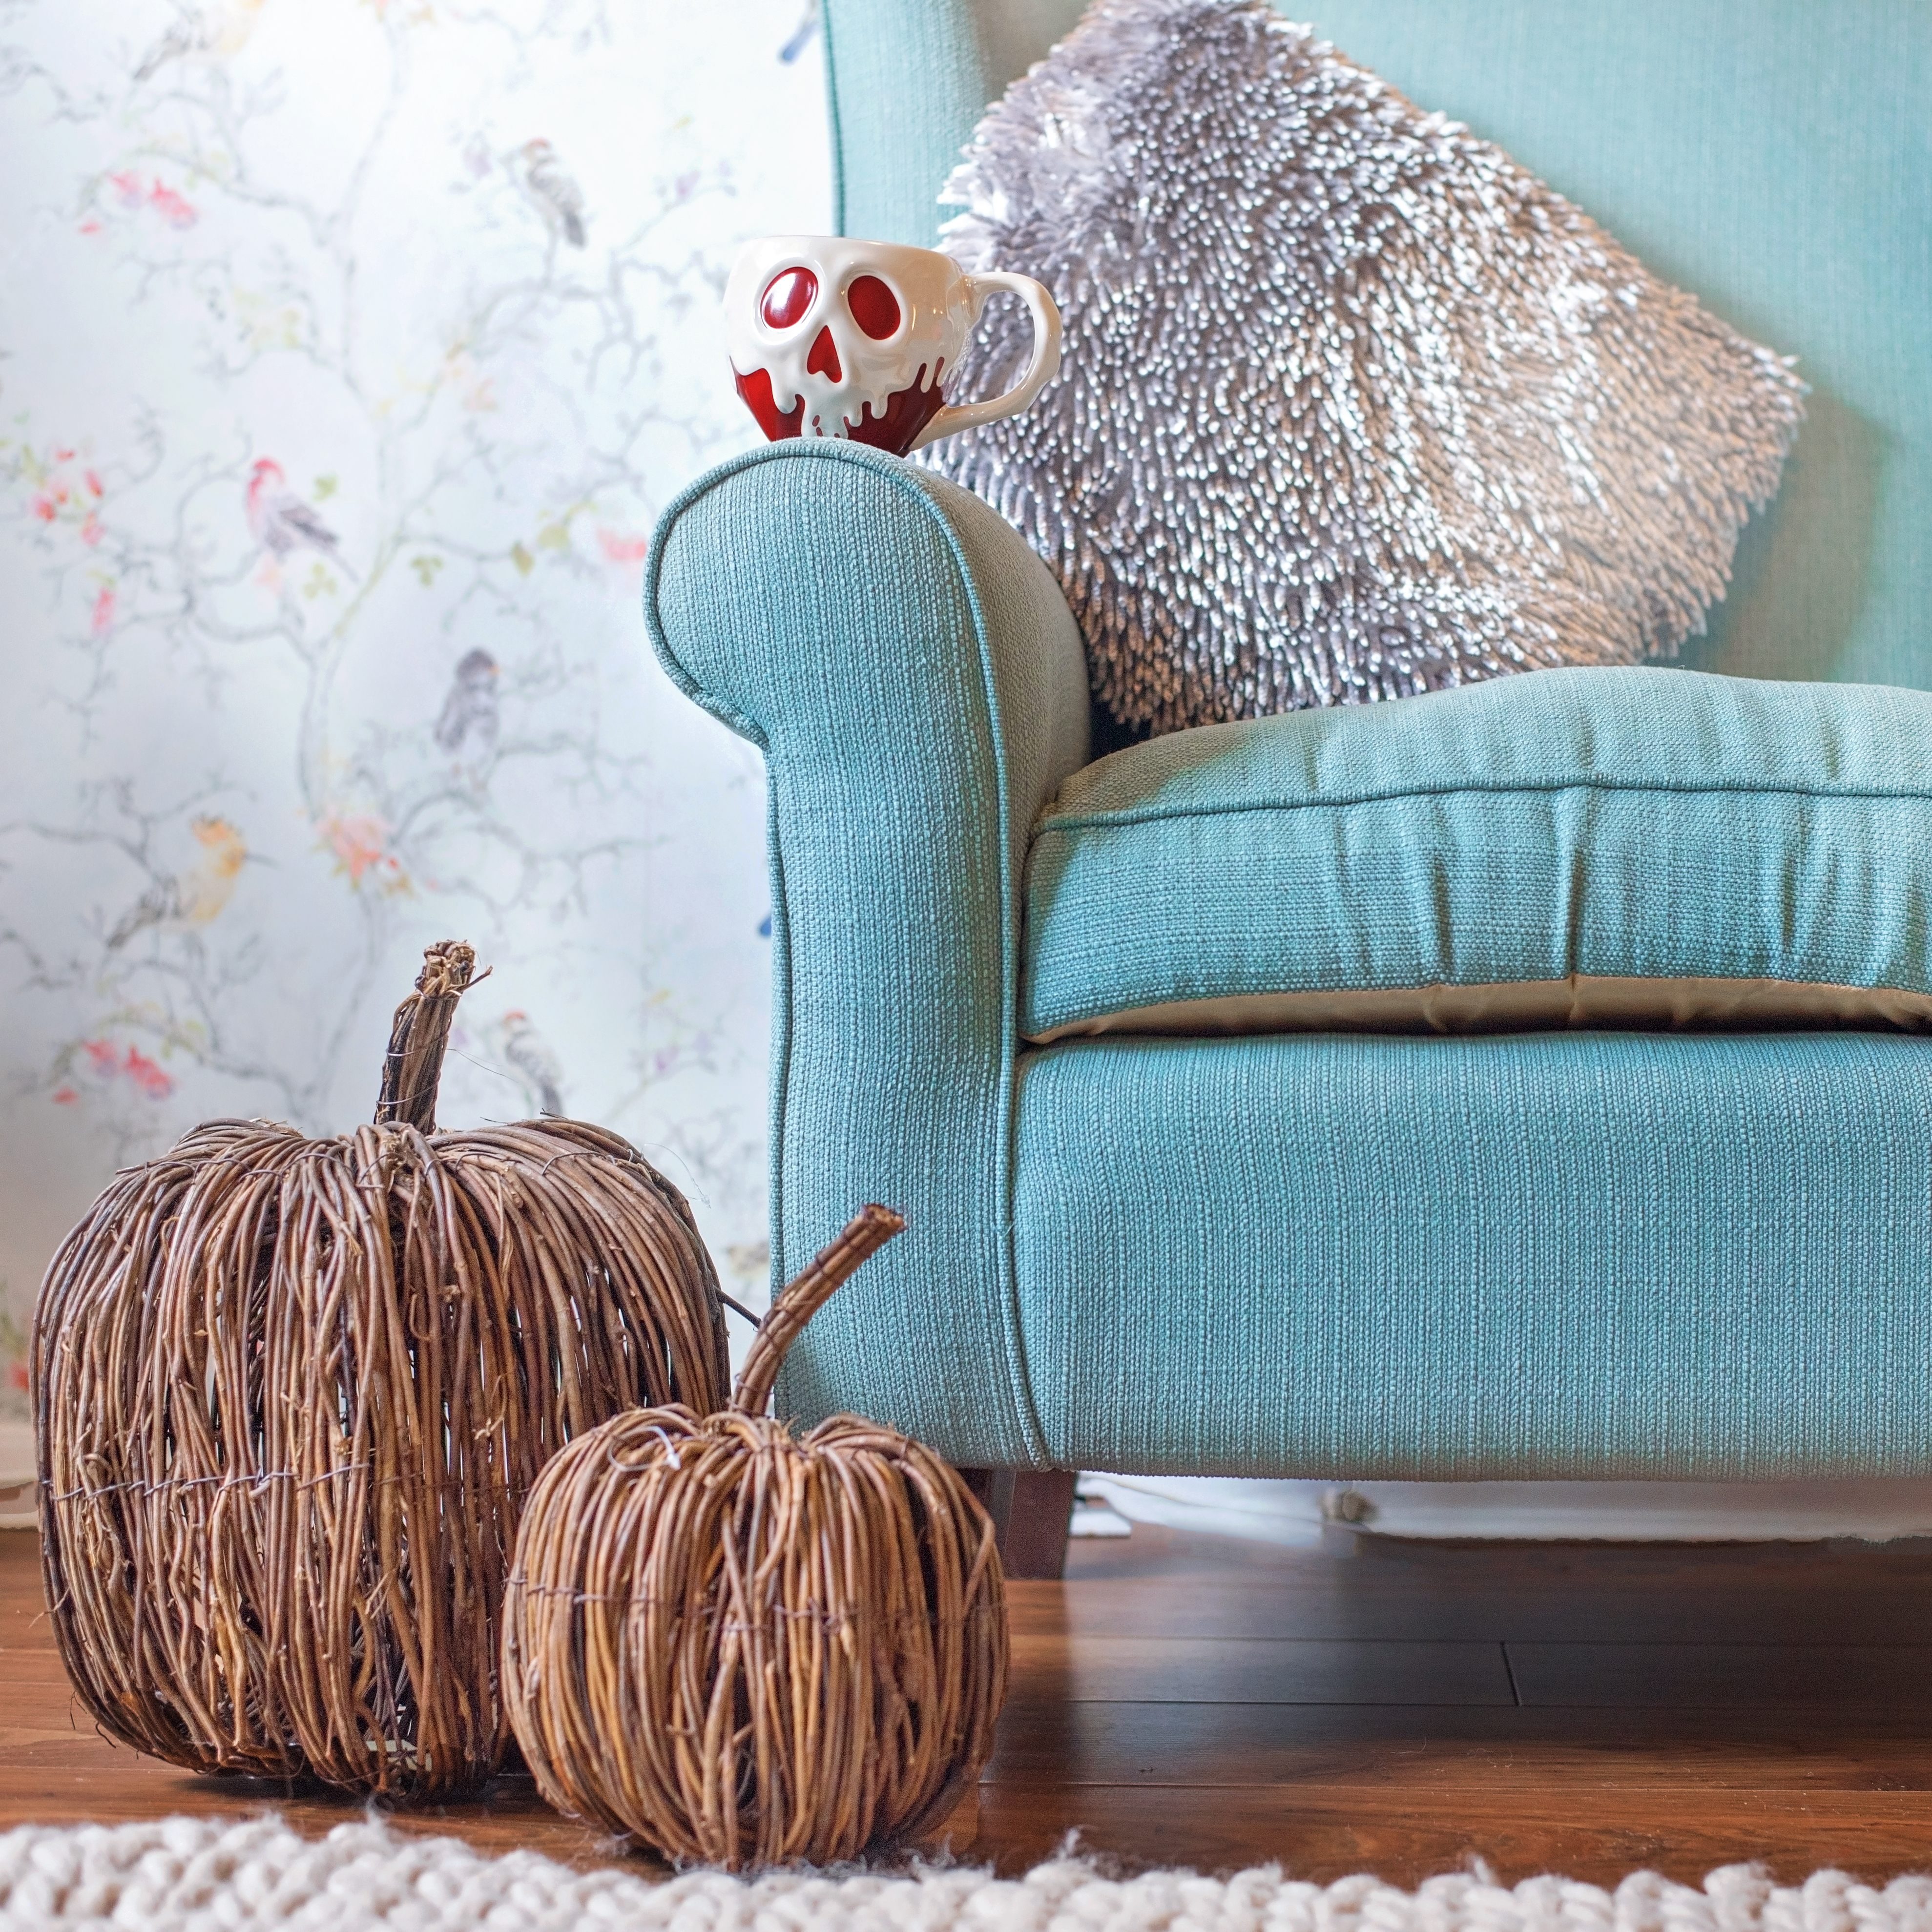 MY CHAIR: A REVELATION FROM SLOANE & SONS